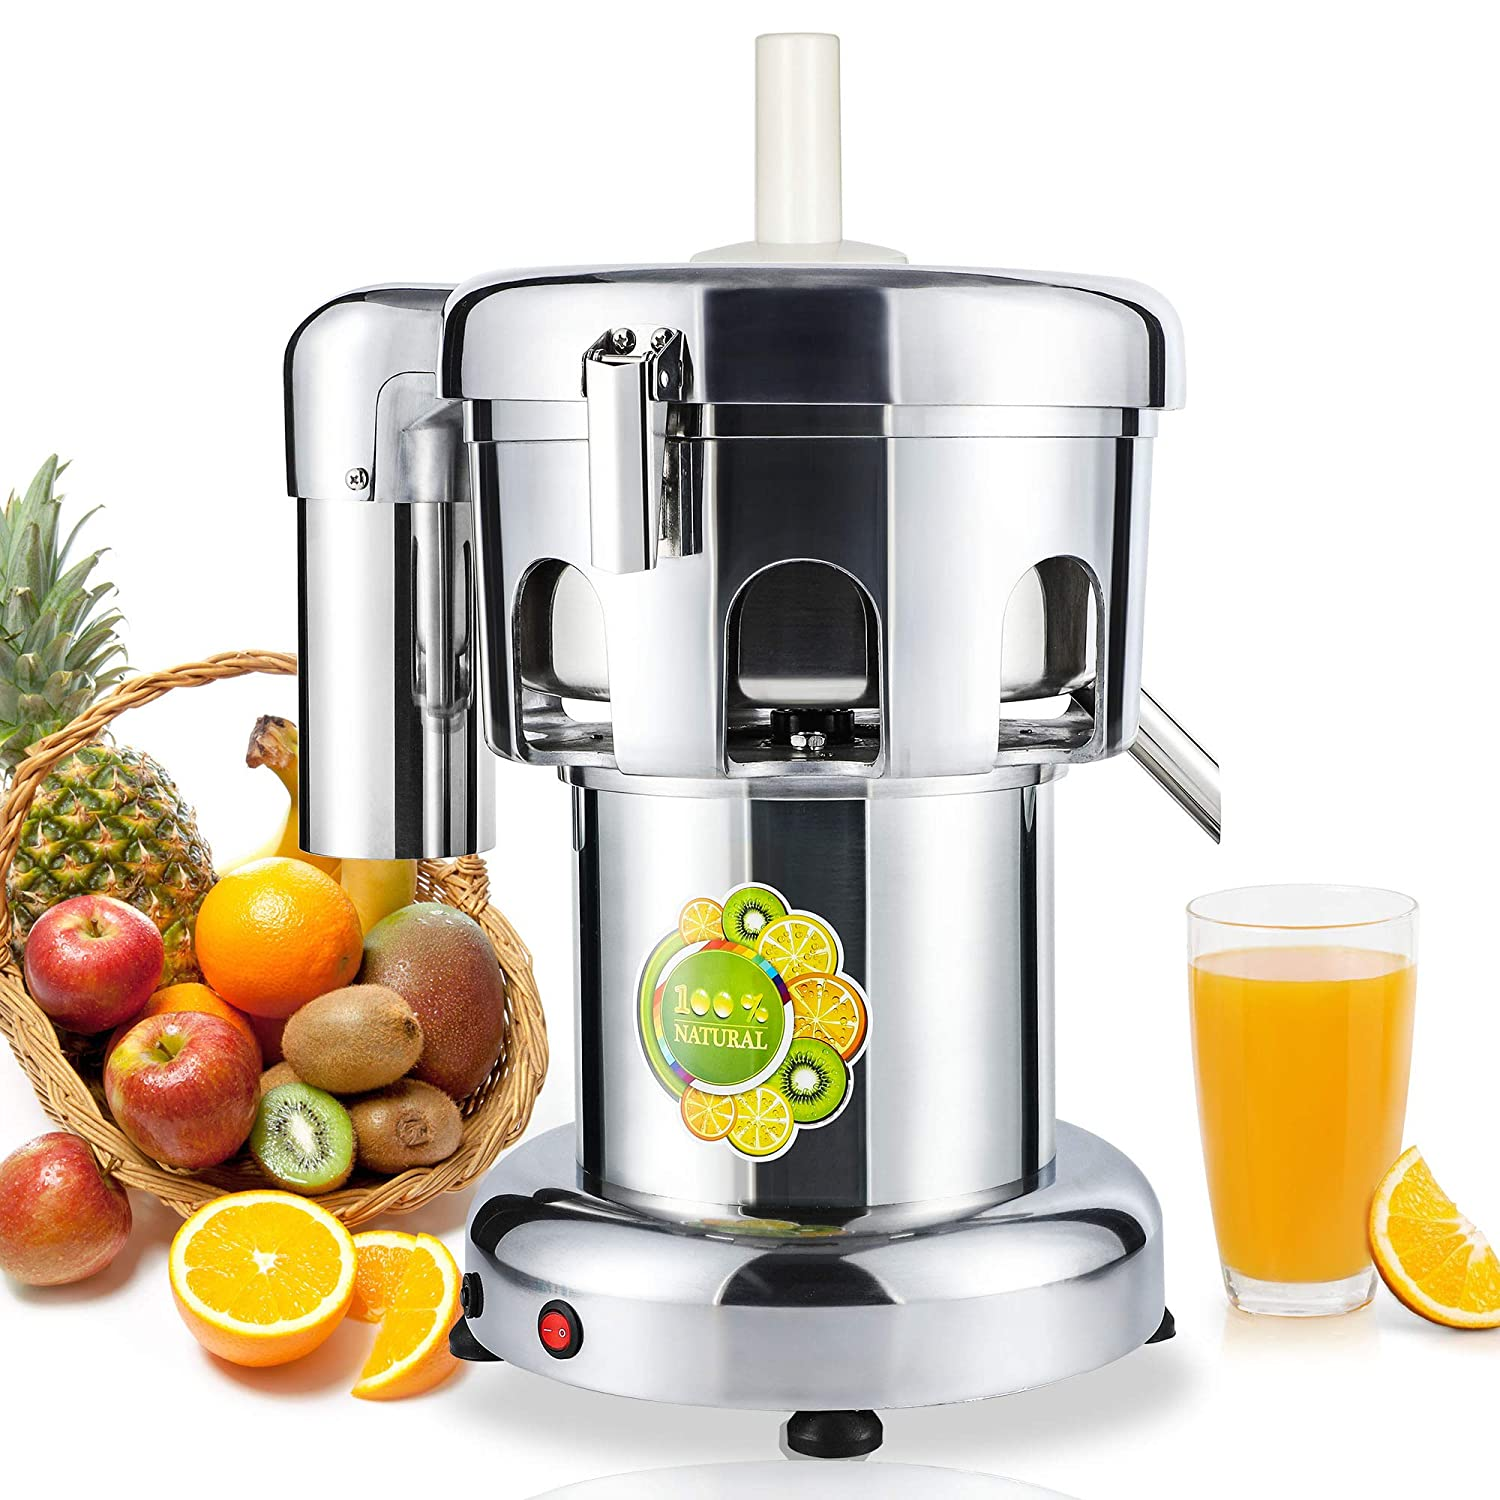 NEWTRY Commercial Juice Extractor for Restaurant 260lb/h Fruit Vegetable Residue Separation Squeezer Machine 550W Heavy Duty Centrifugal Electric 304 Stainless Steel Juicer 110V